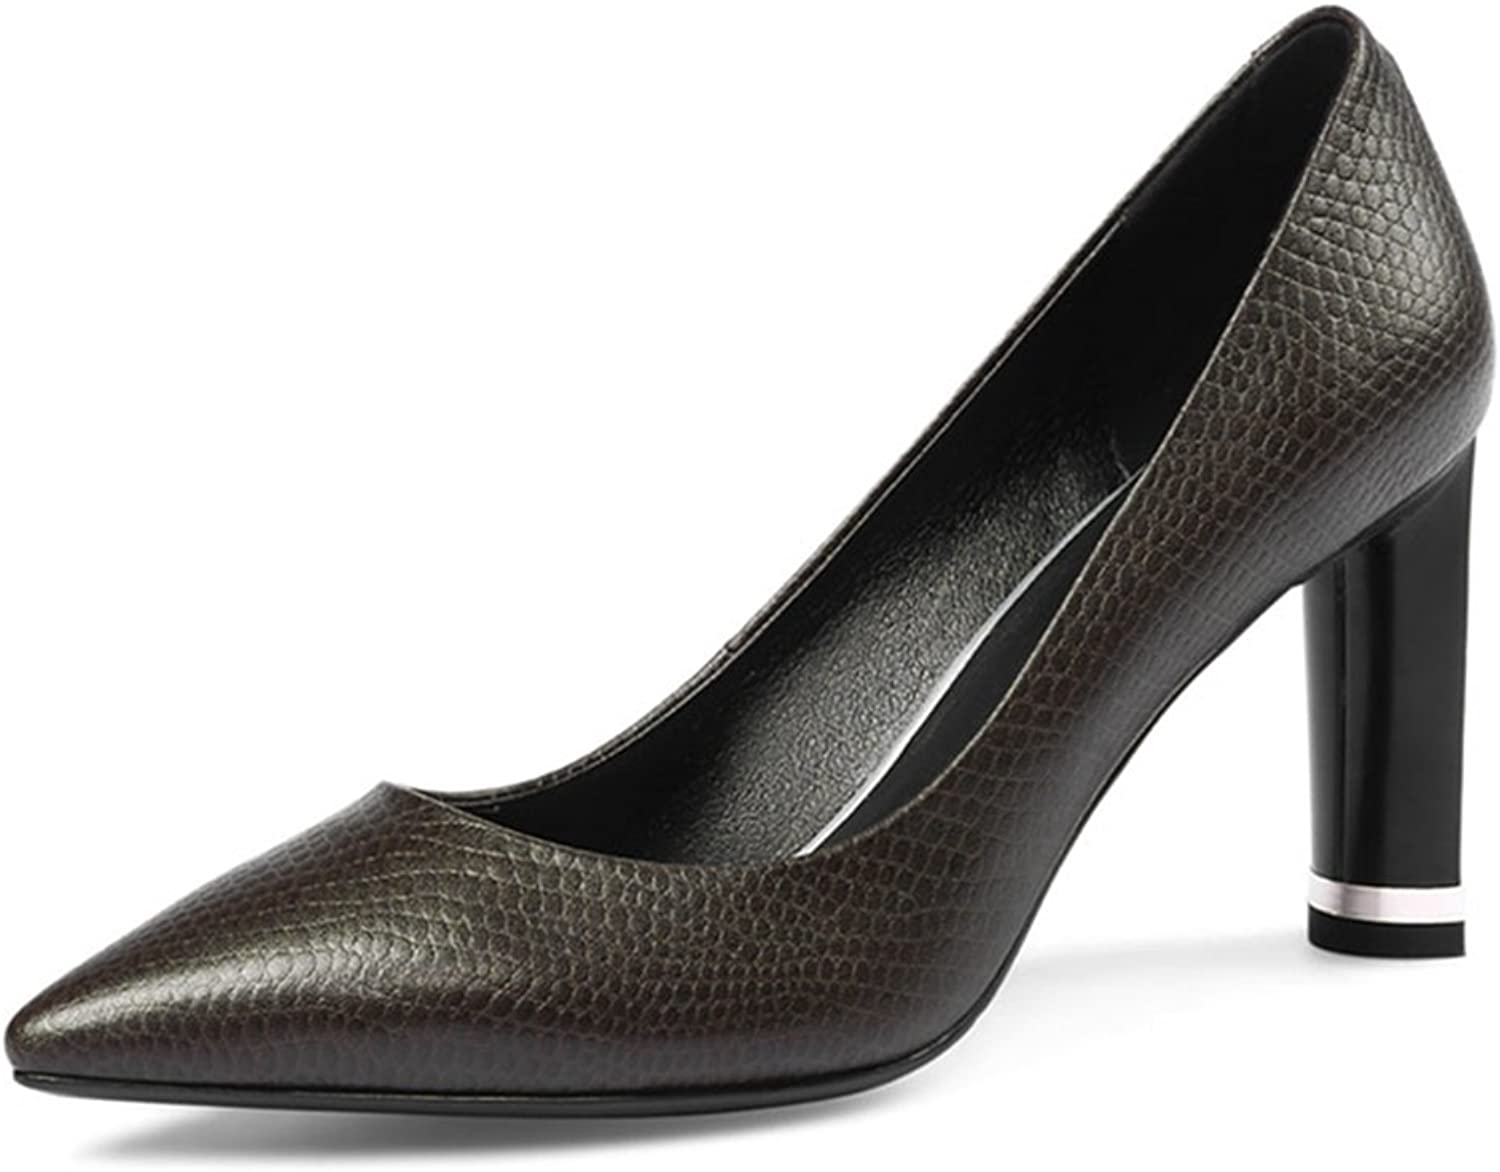 York Zhu Women Pumps, Casual Black Slip-on Pointed Toe Square Heel Office shoes